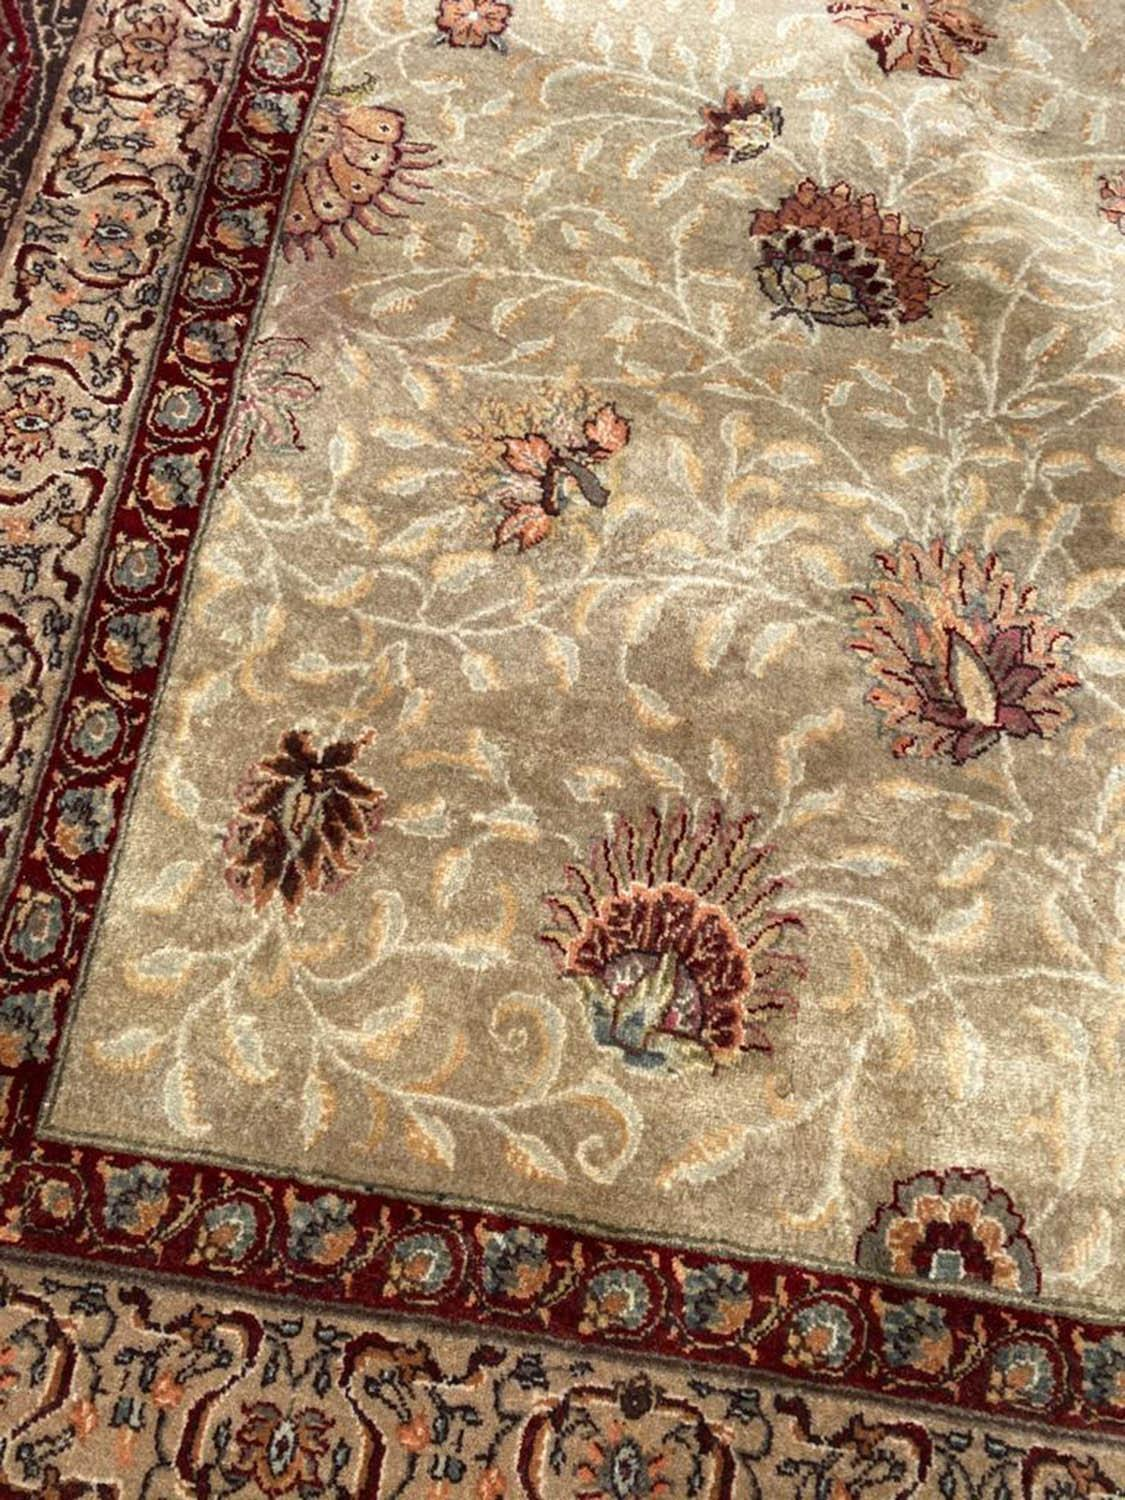 FINE HEREKE DESIGN CARPET, 560cm x 353cm. - Image 2 of 4